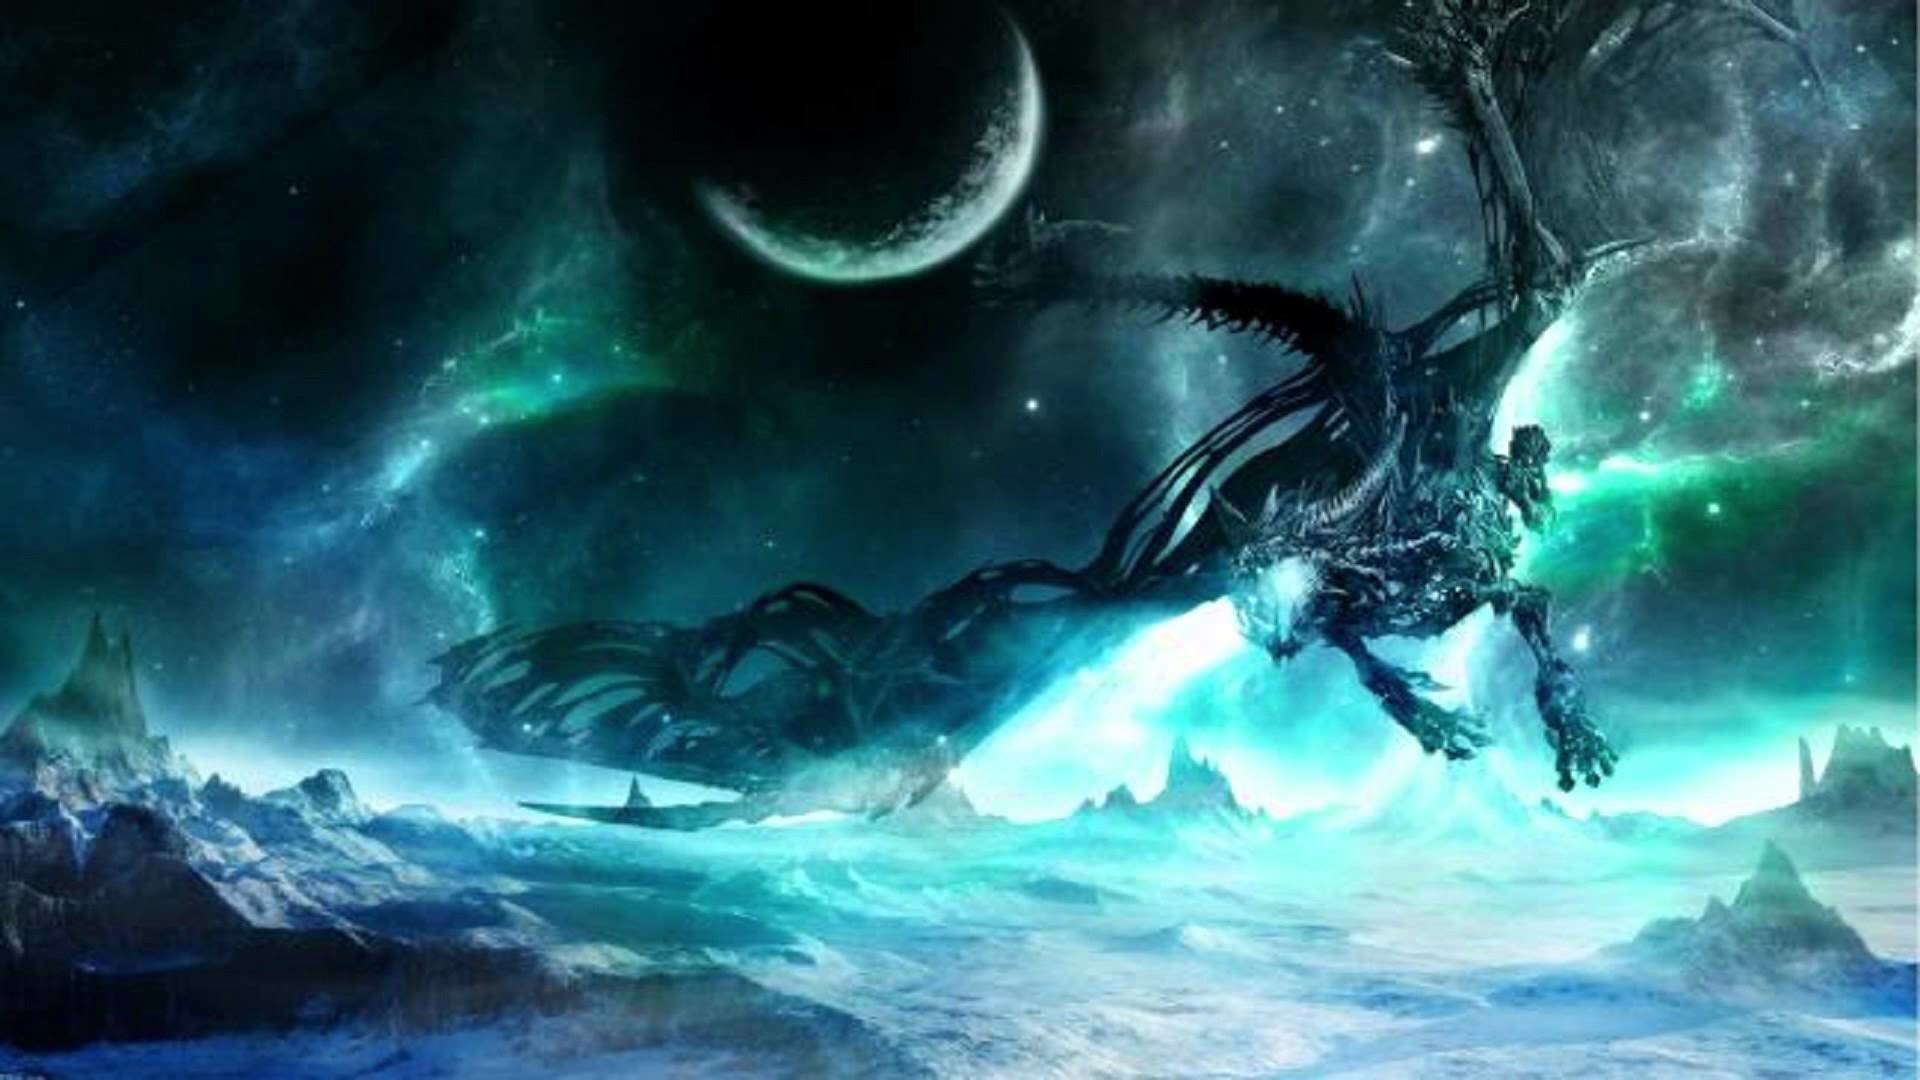 Epic Movie Hd Wallpapers Water Dragon Wallpaper 76 Images